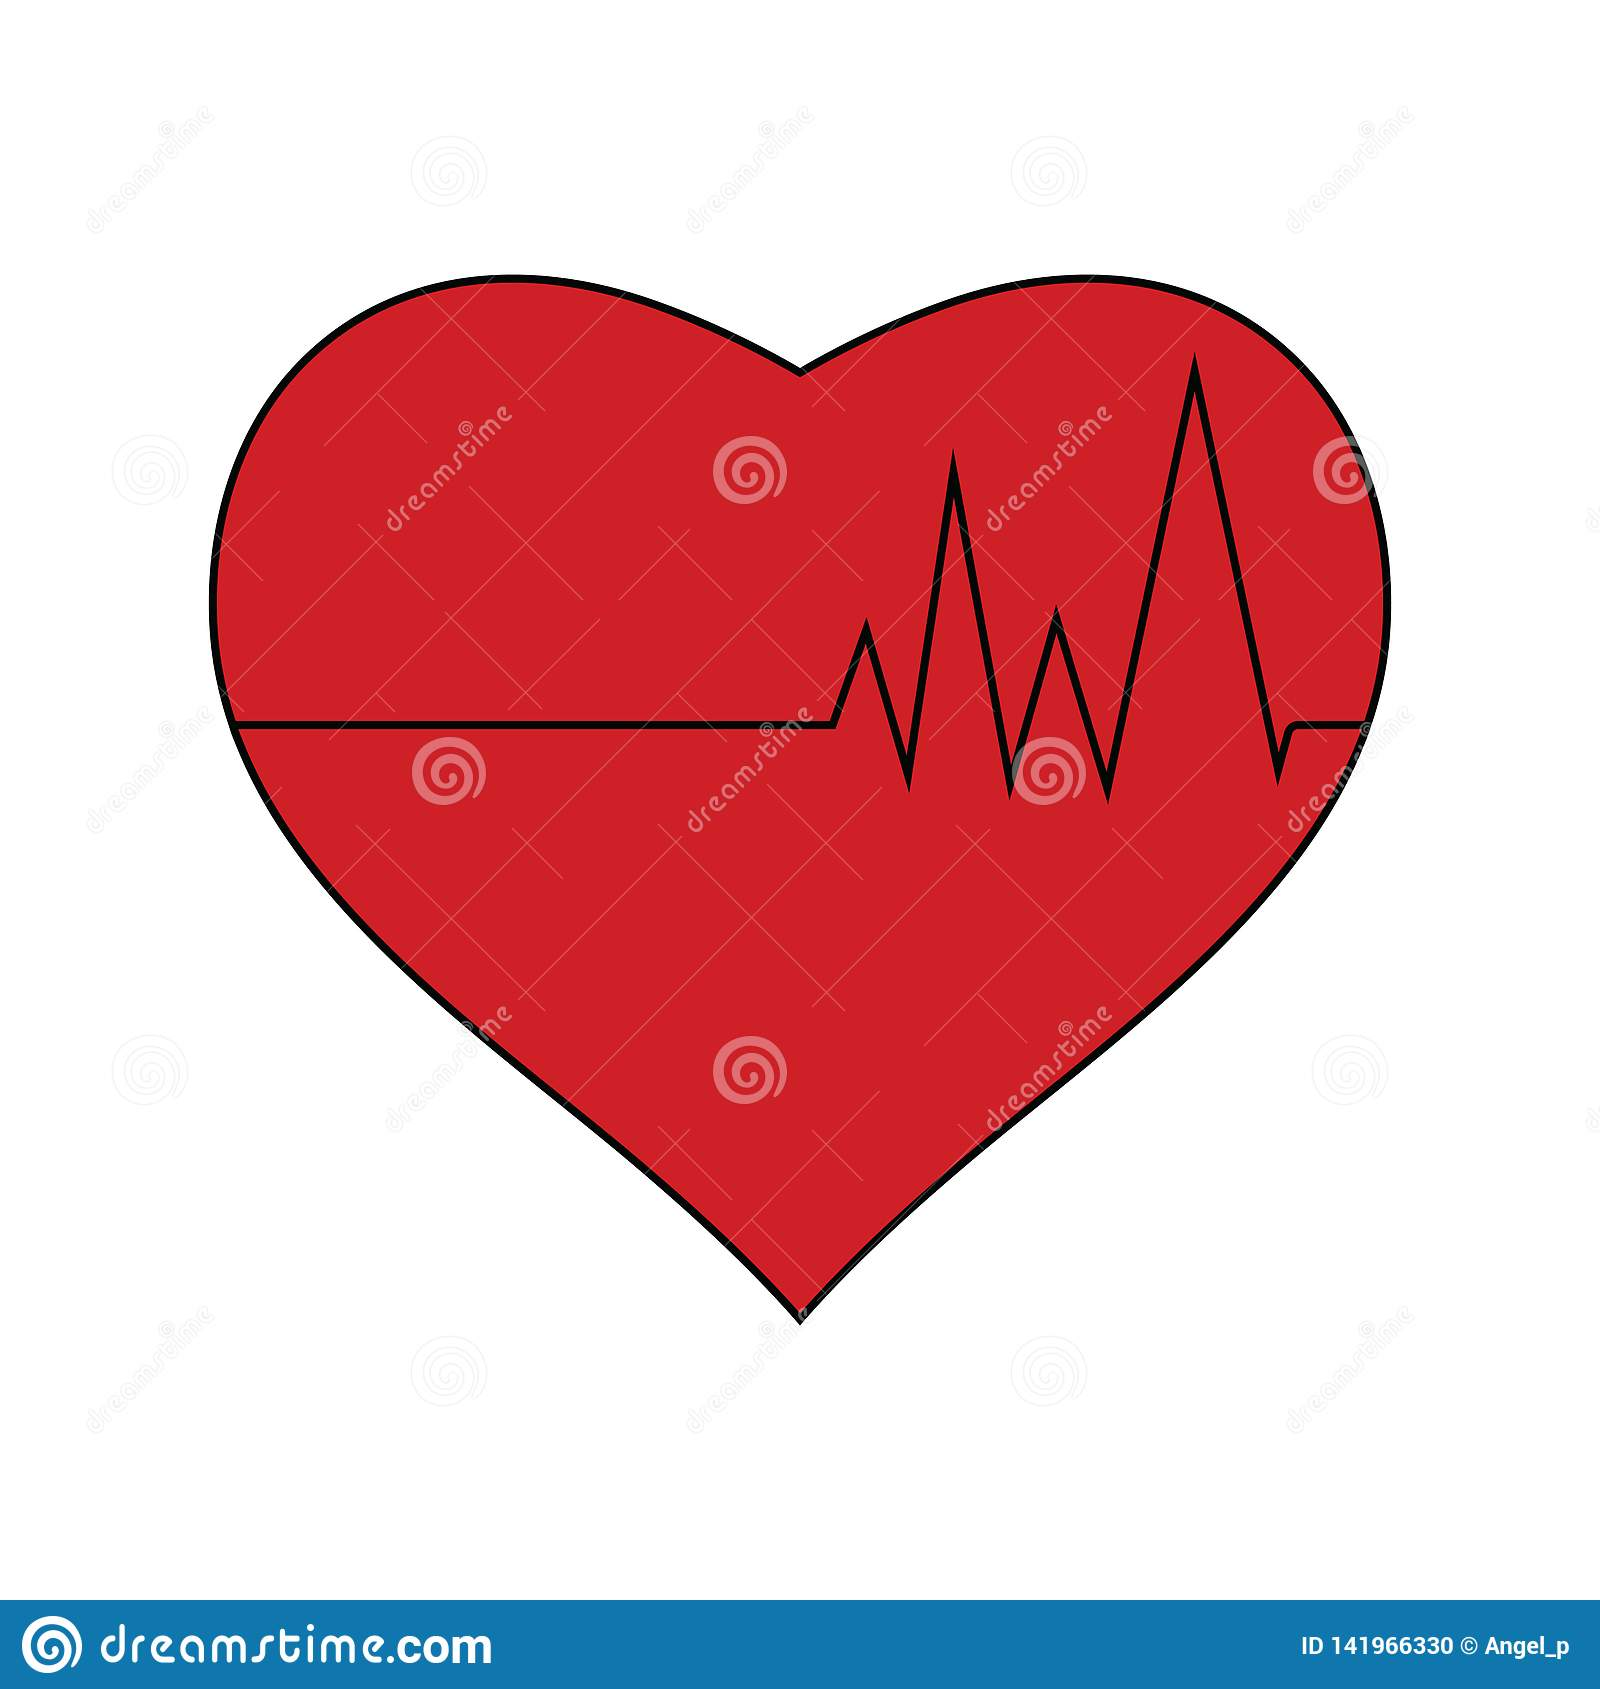 Flat Design Icon Of Heart With Cardio Diagram Stock Vector ...